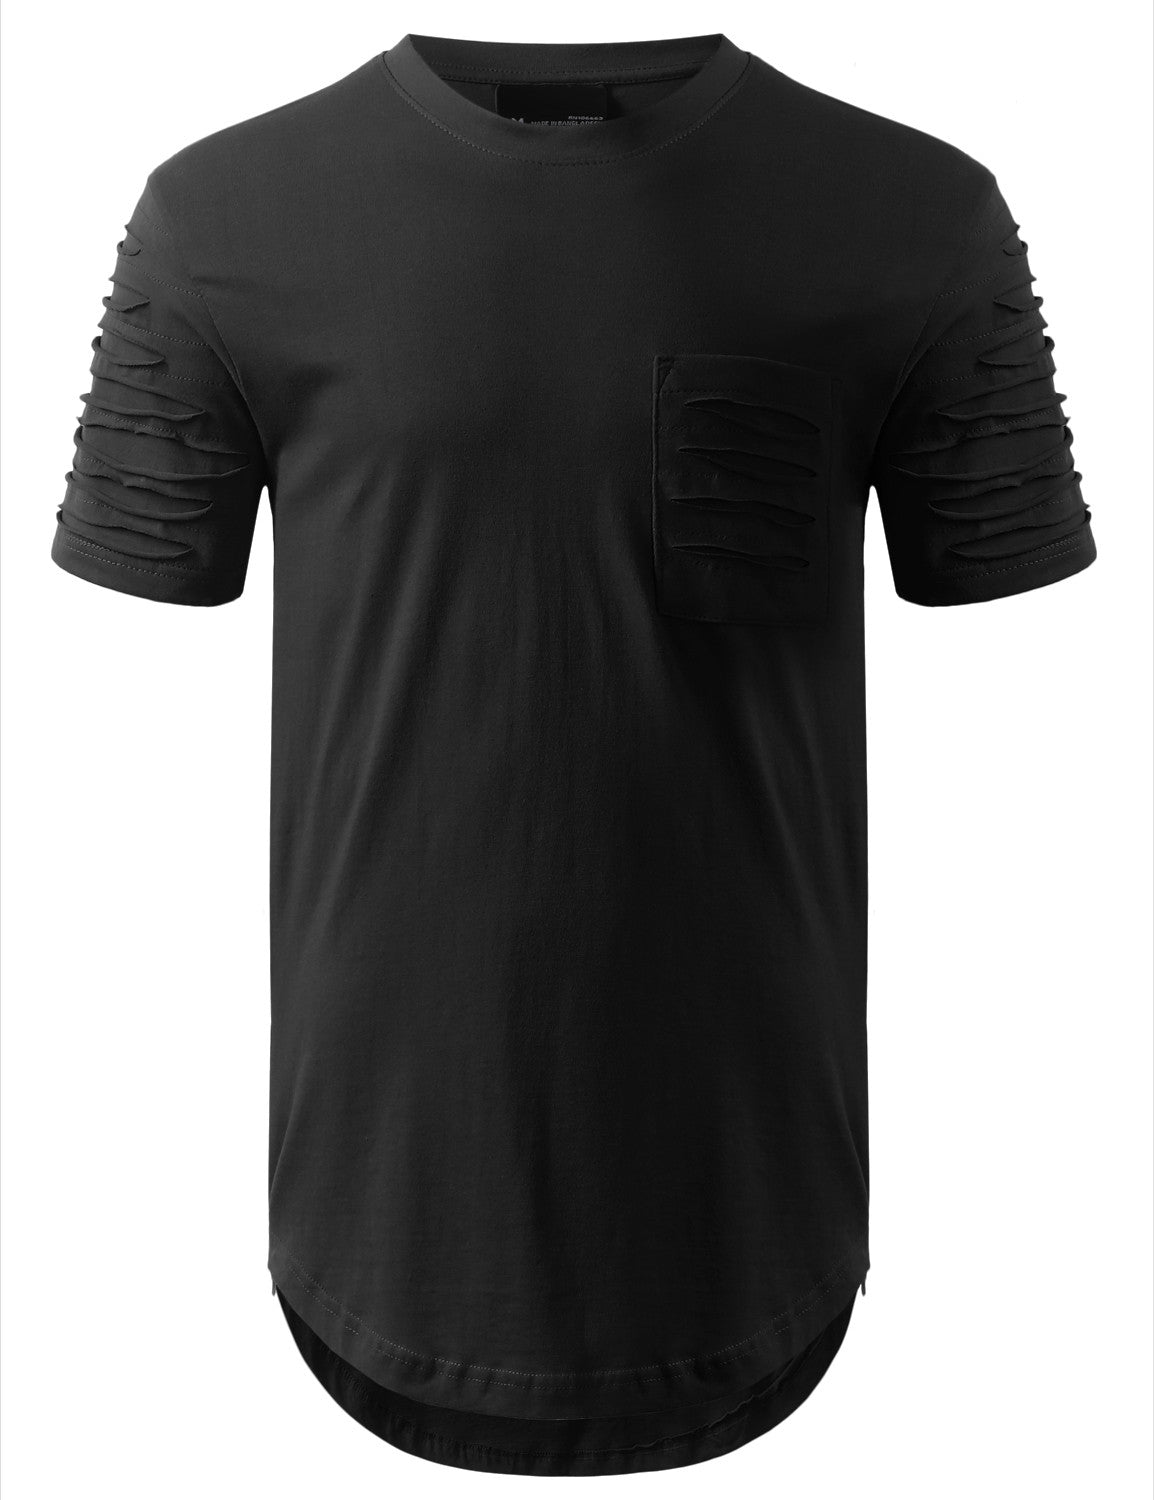 BLACK Ripped Chest Pocket Longline Crewneck Tshirts